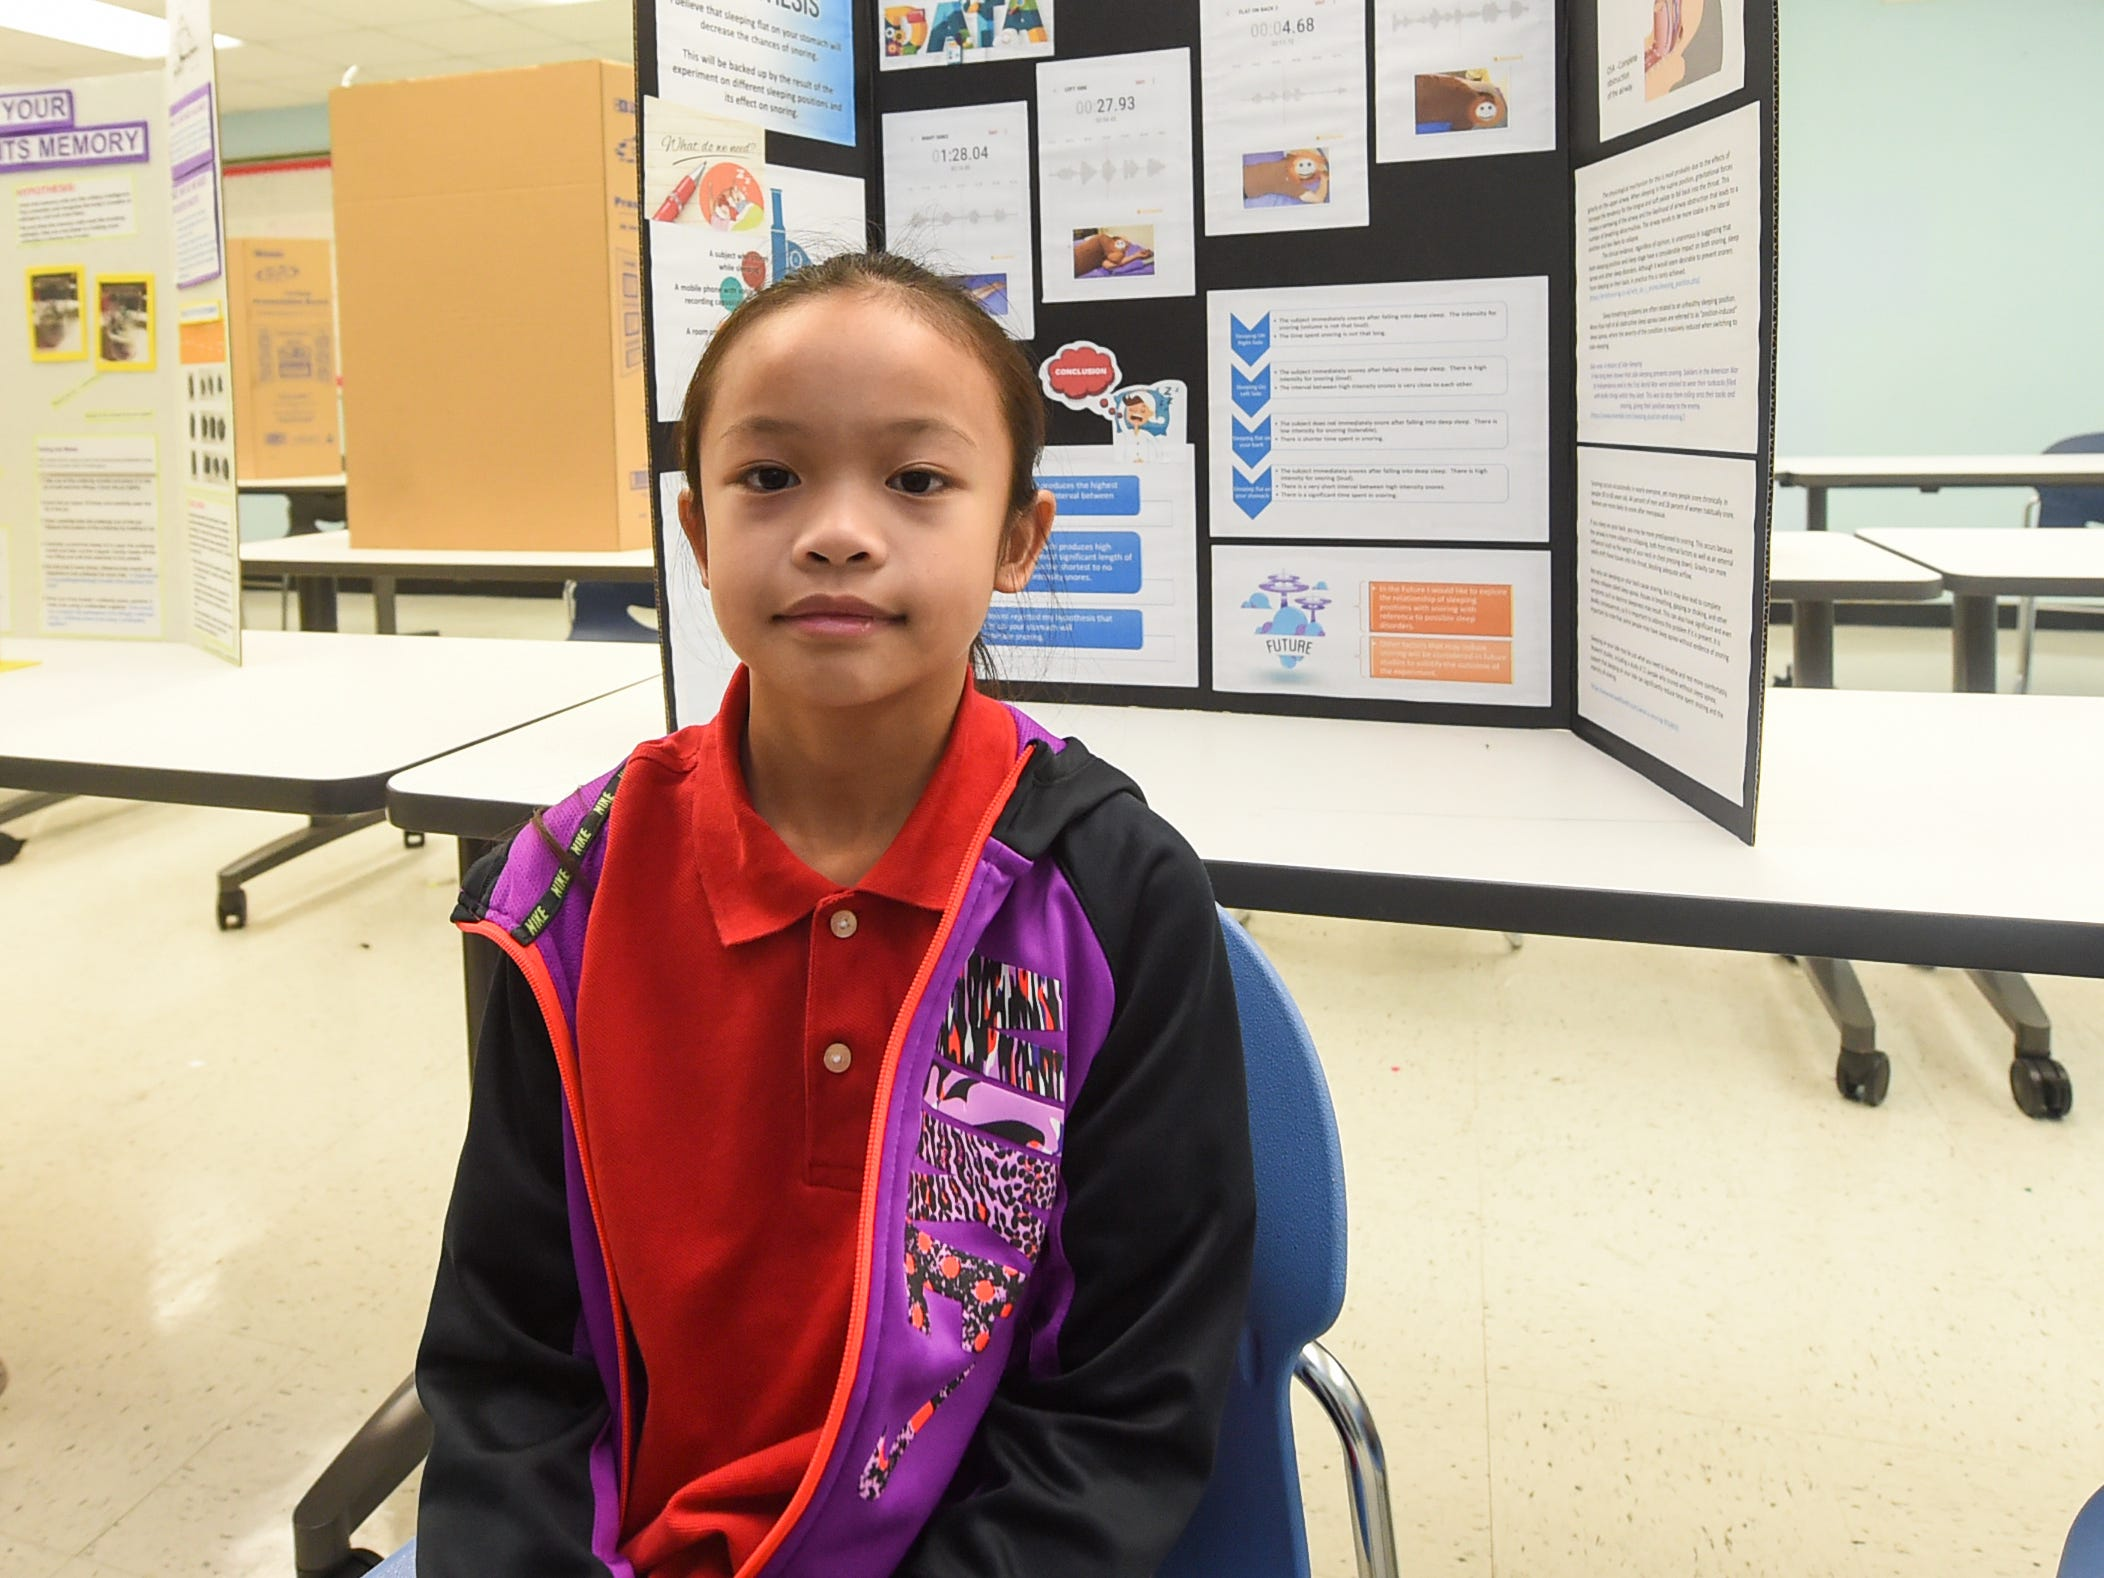 Cara Vidallon, 9, during the 41st Annual Islandwide Science Fair at the University of Guam in Mangilao, May 11, 2019.